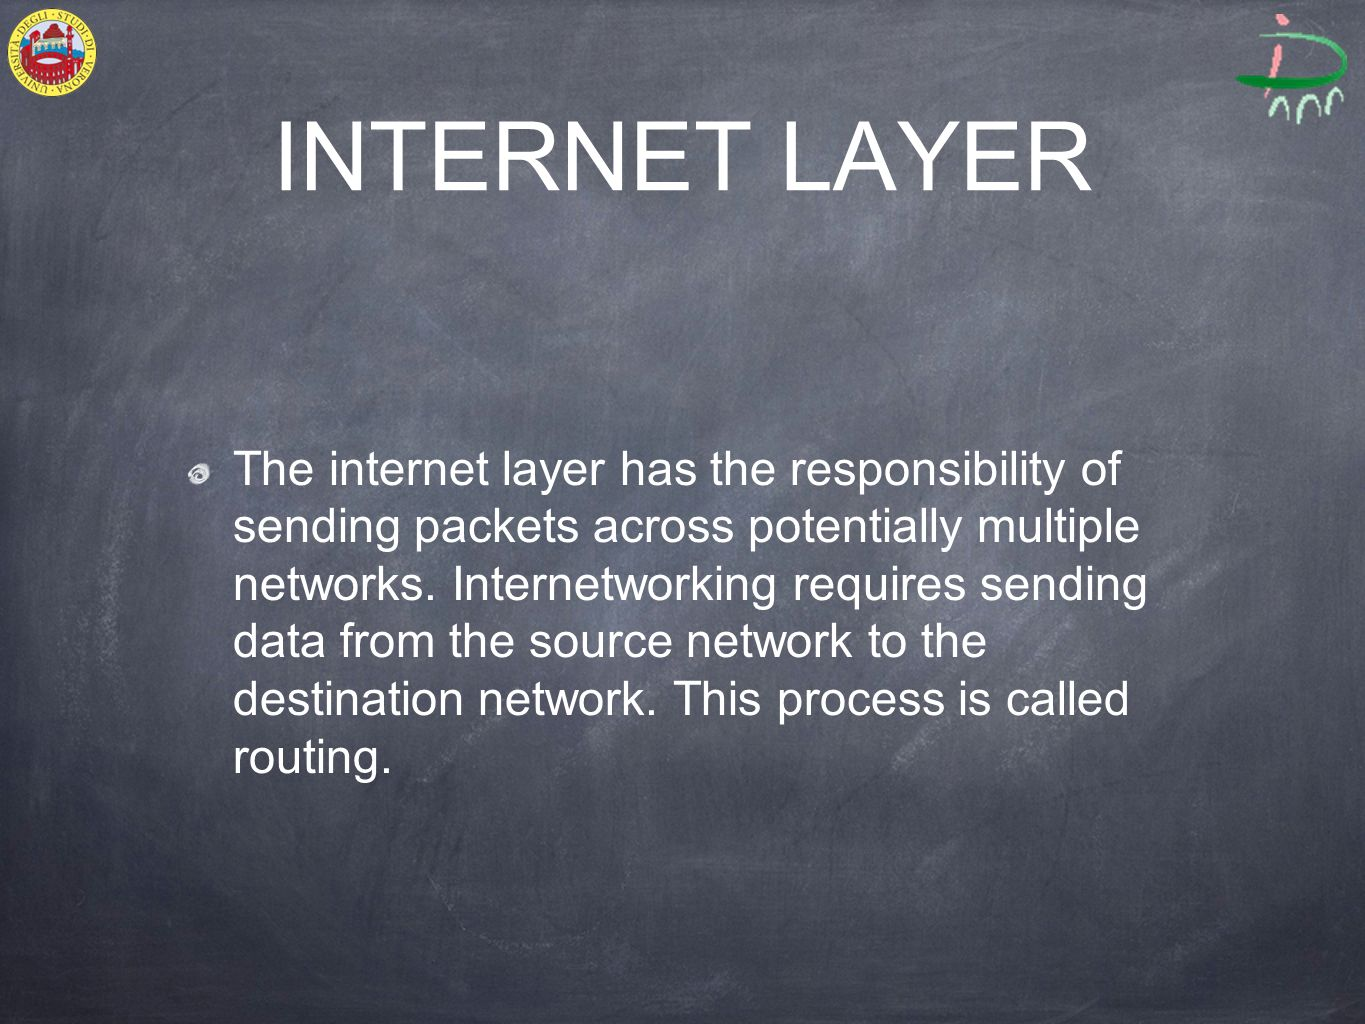 INTERNET LAYER The internet layer has the responsibility of sending packets across potentially multiple networks. Internetworking requires sending dat